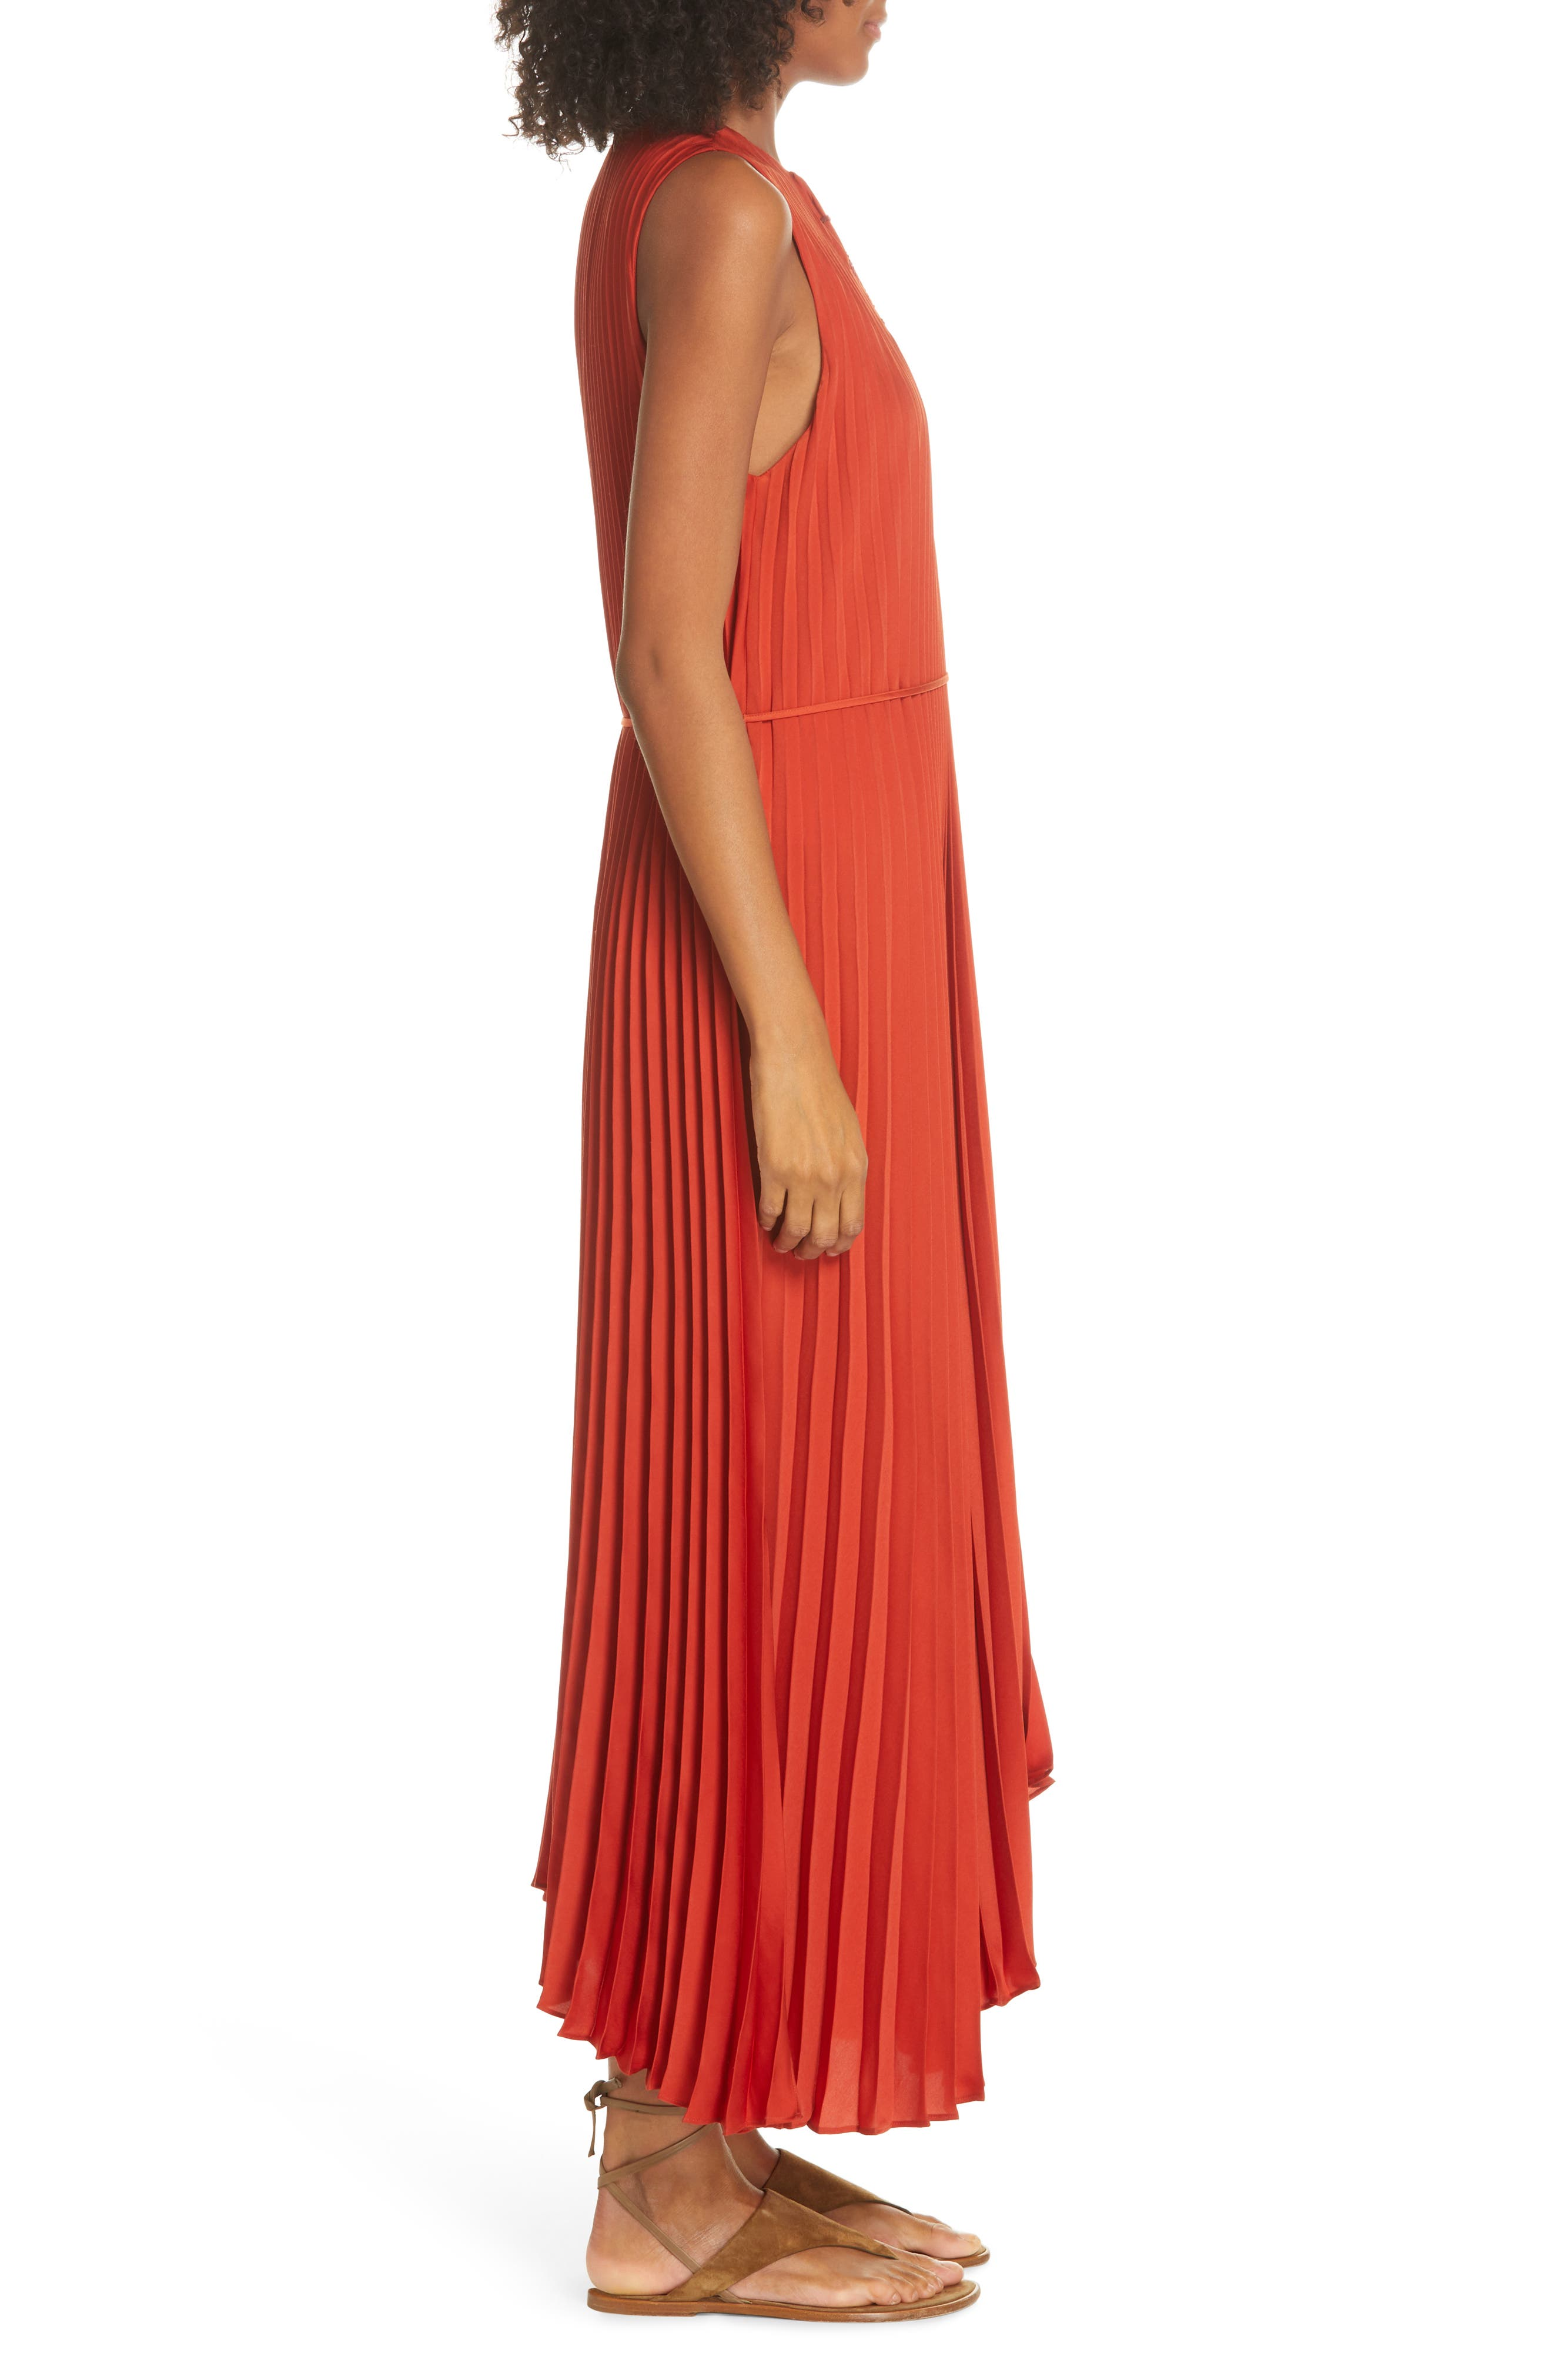 VINCE, Smocked Maxi Dress, Alternate thumbnail 4, color, ADOBE RED